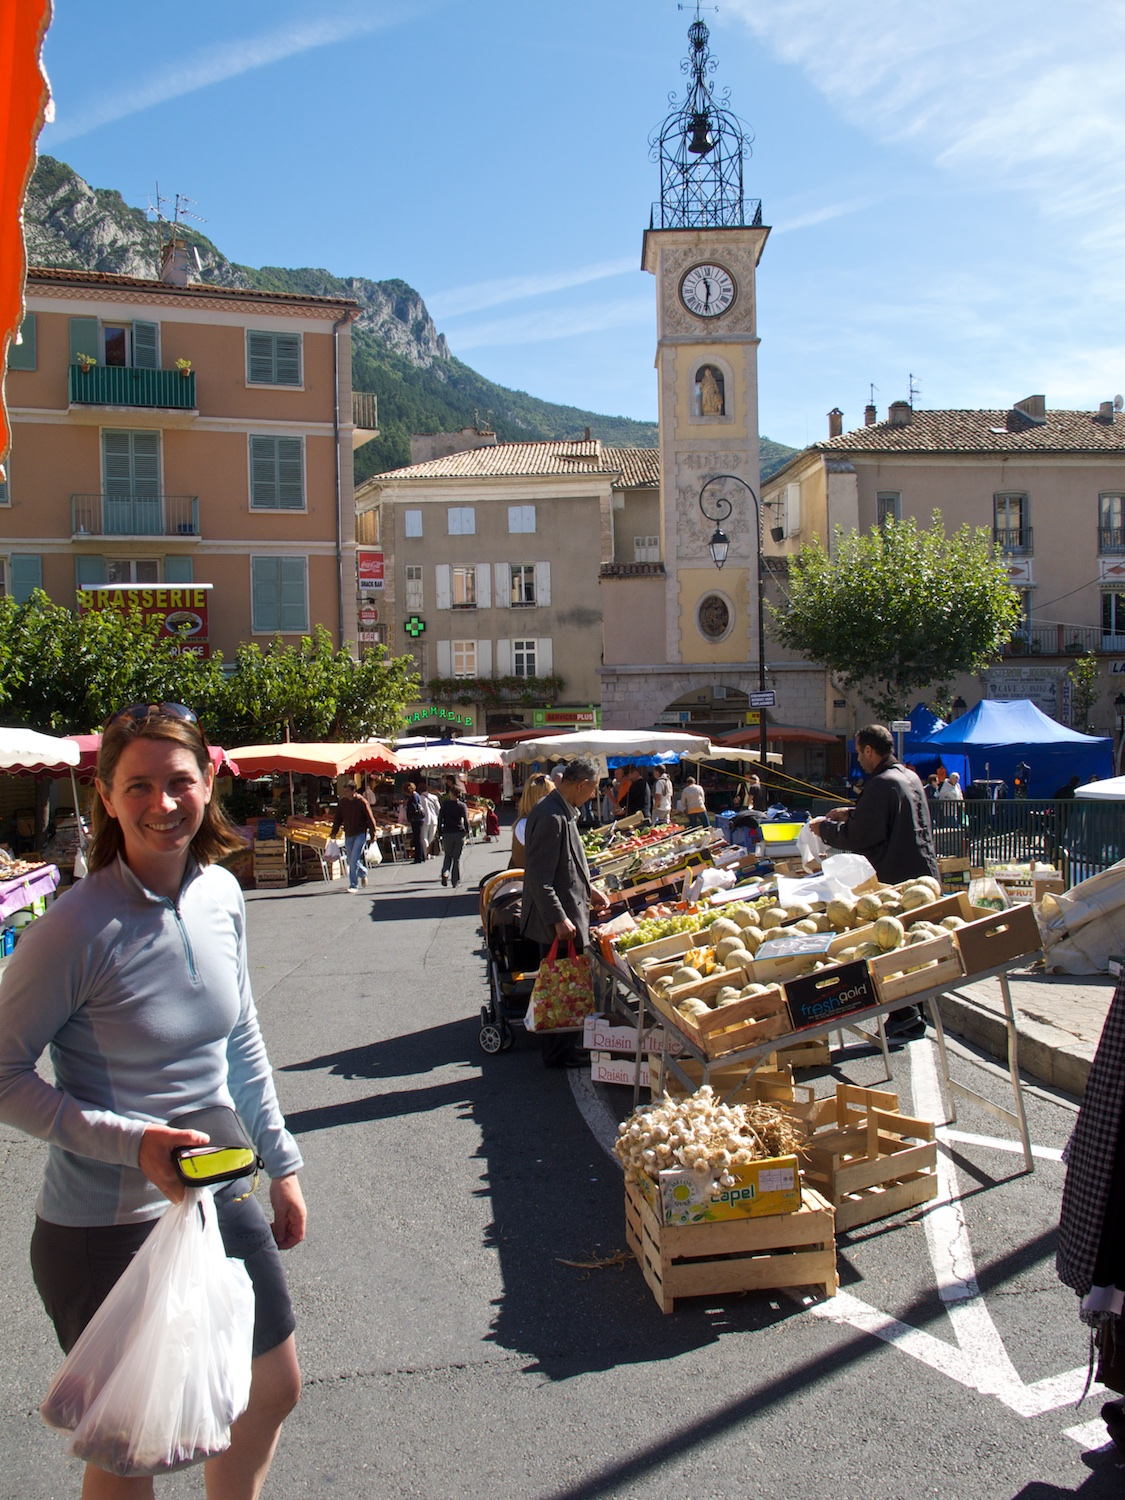 Another local market in Sisteron